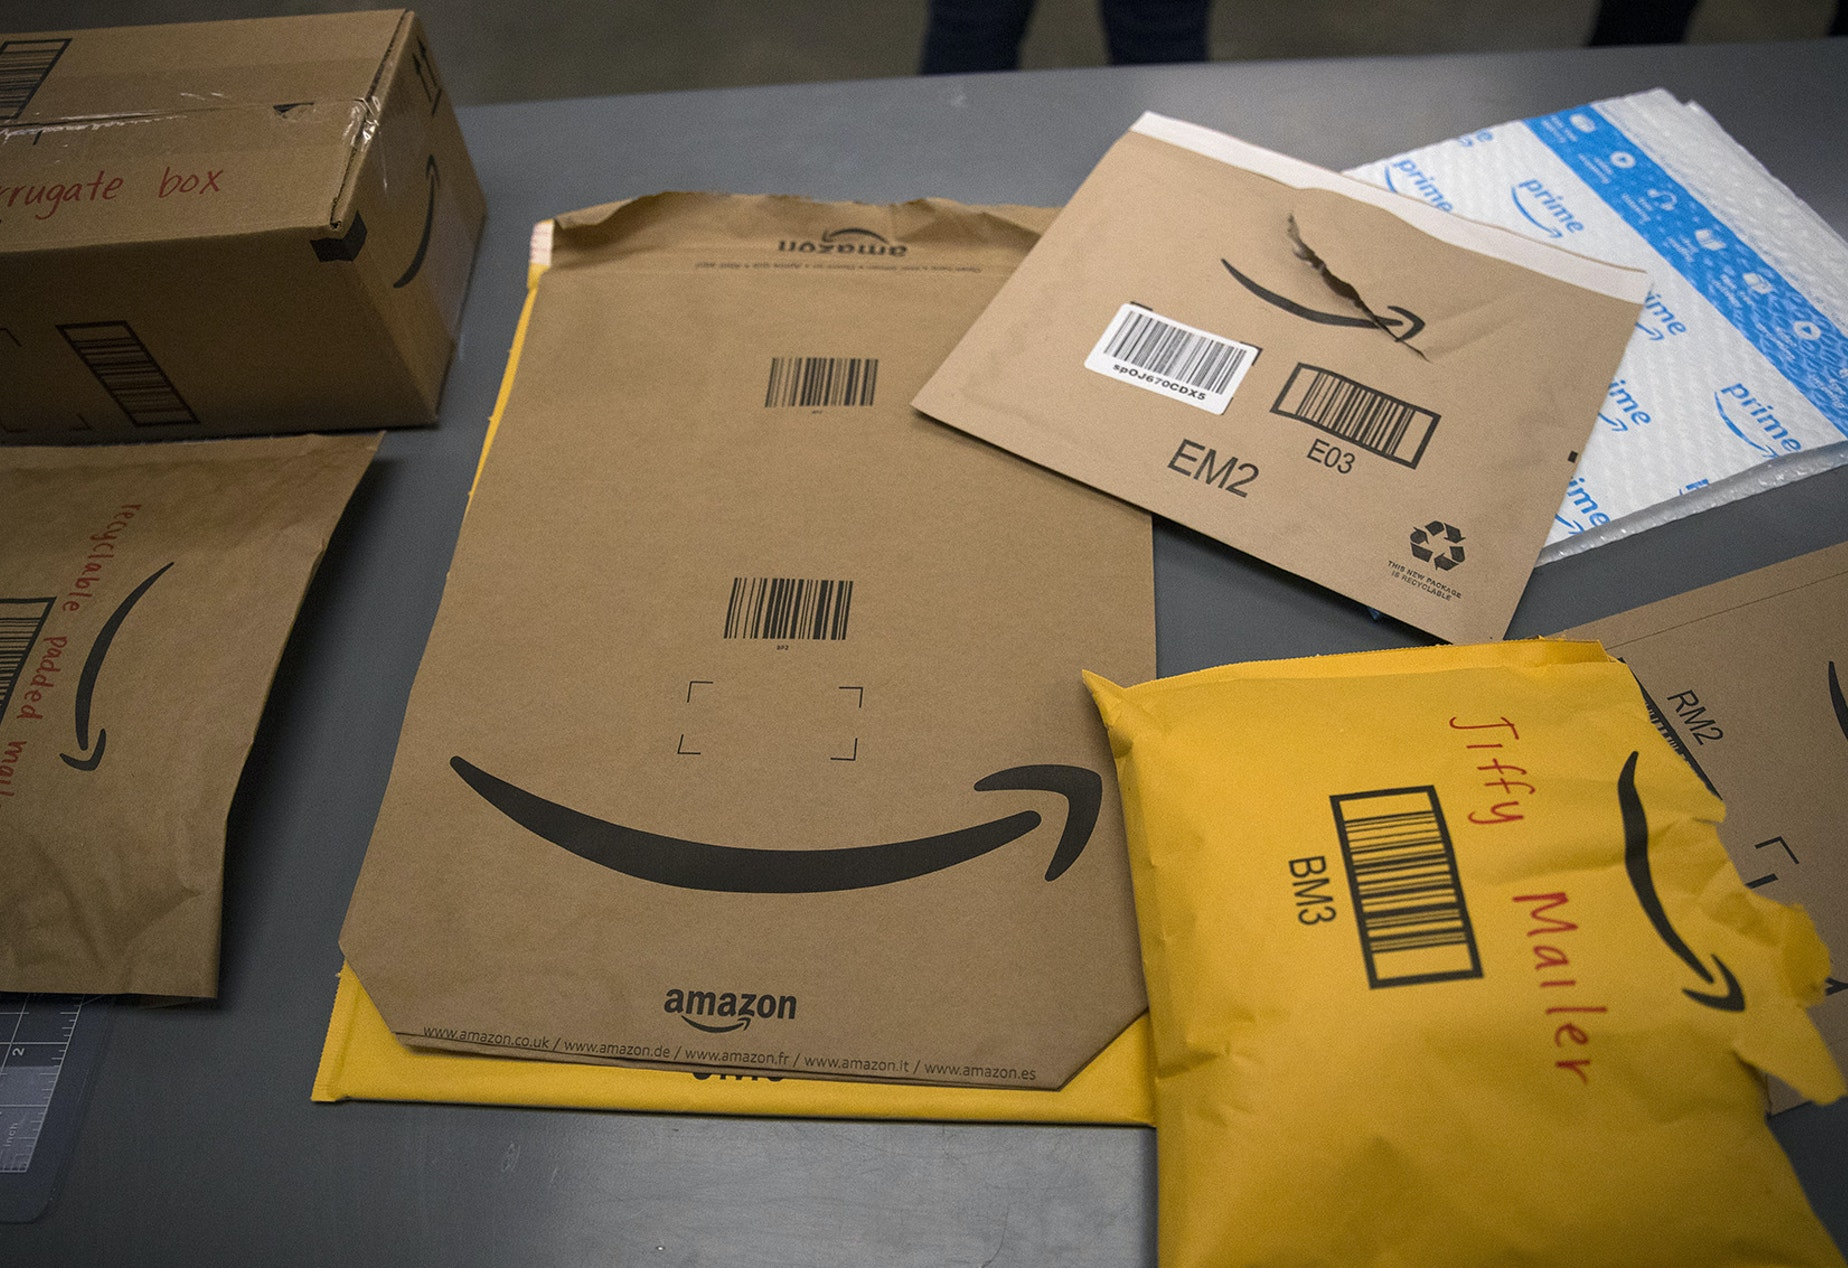 The Push to Make Amazon a Better Corporate Citizen